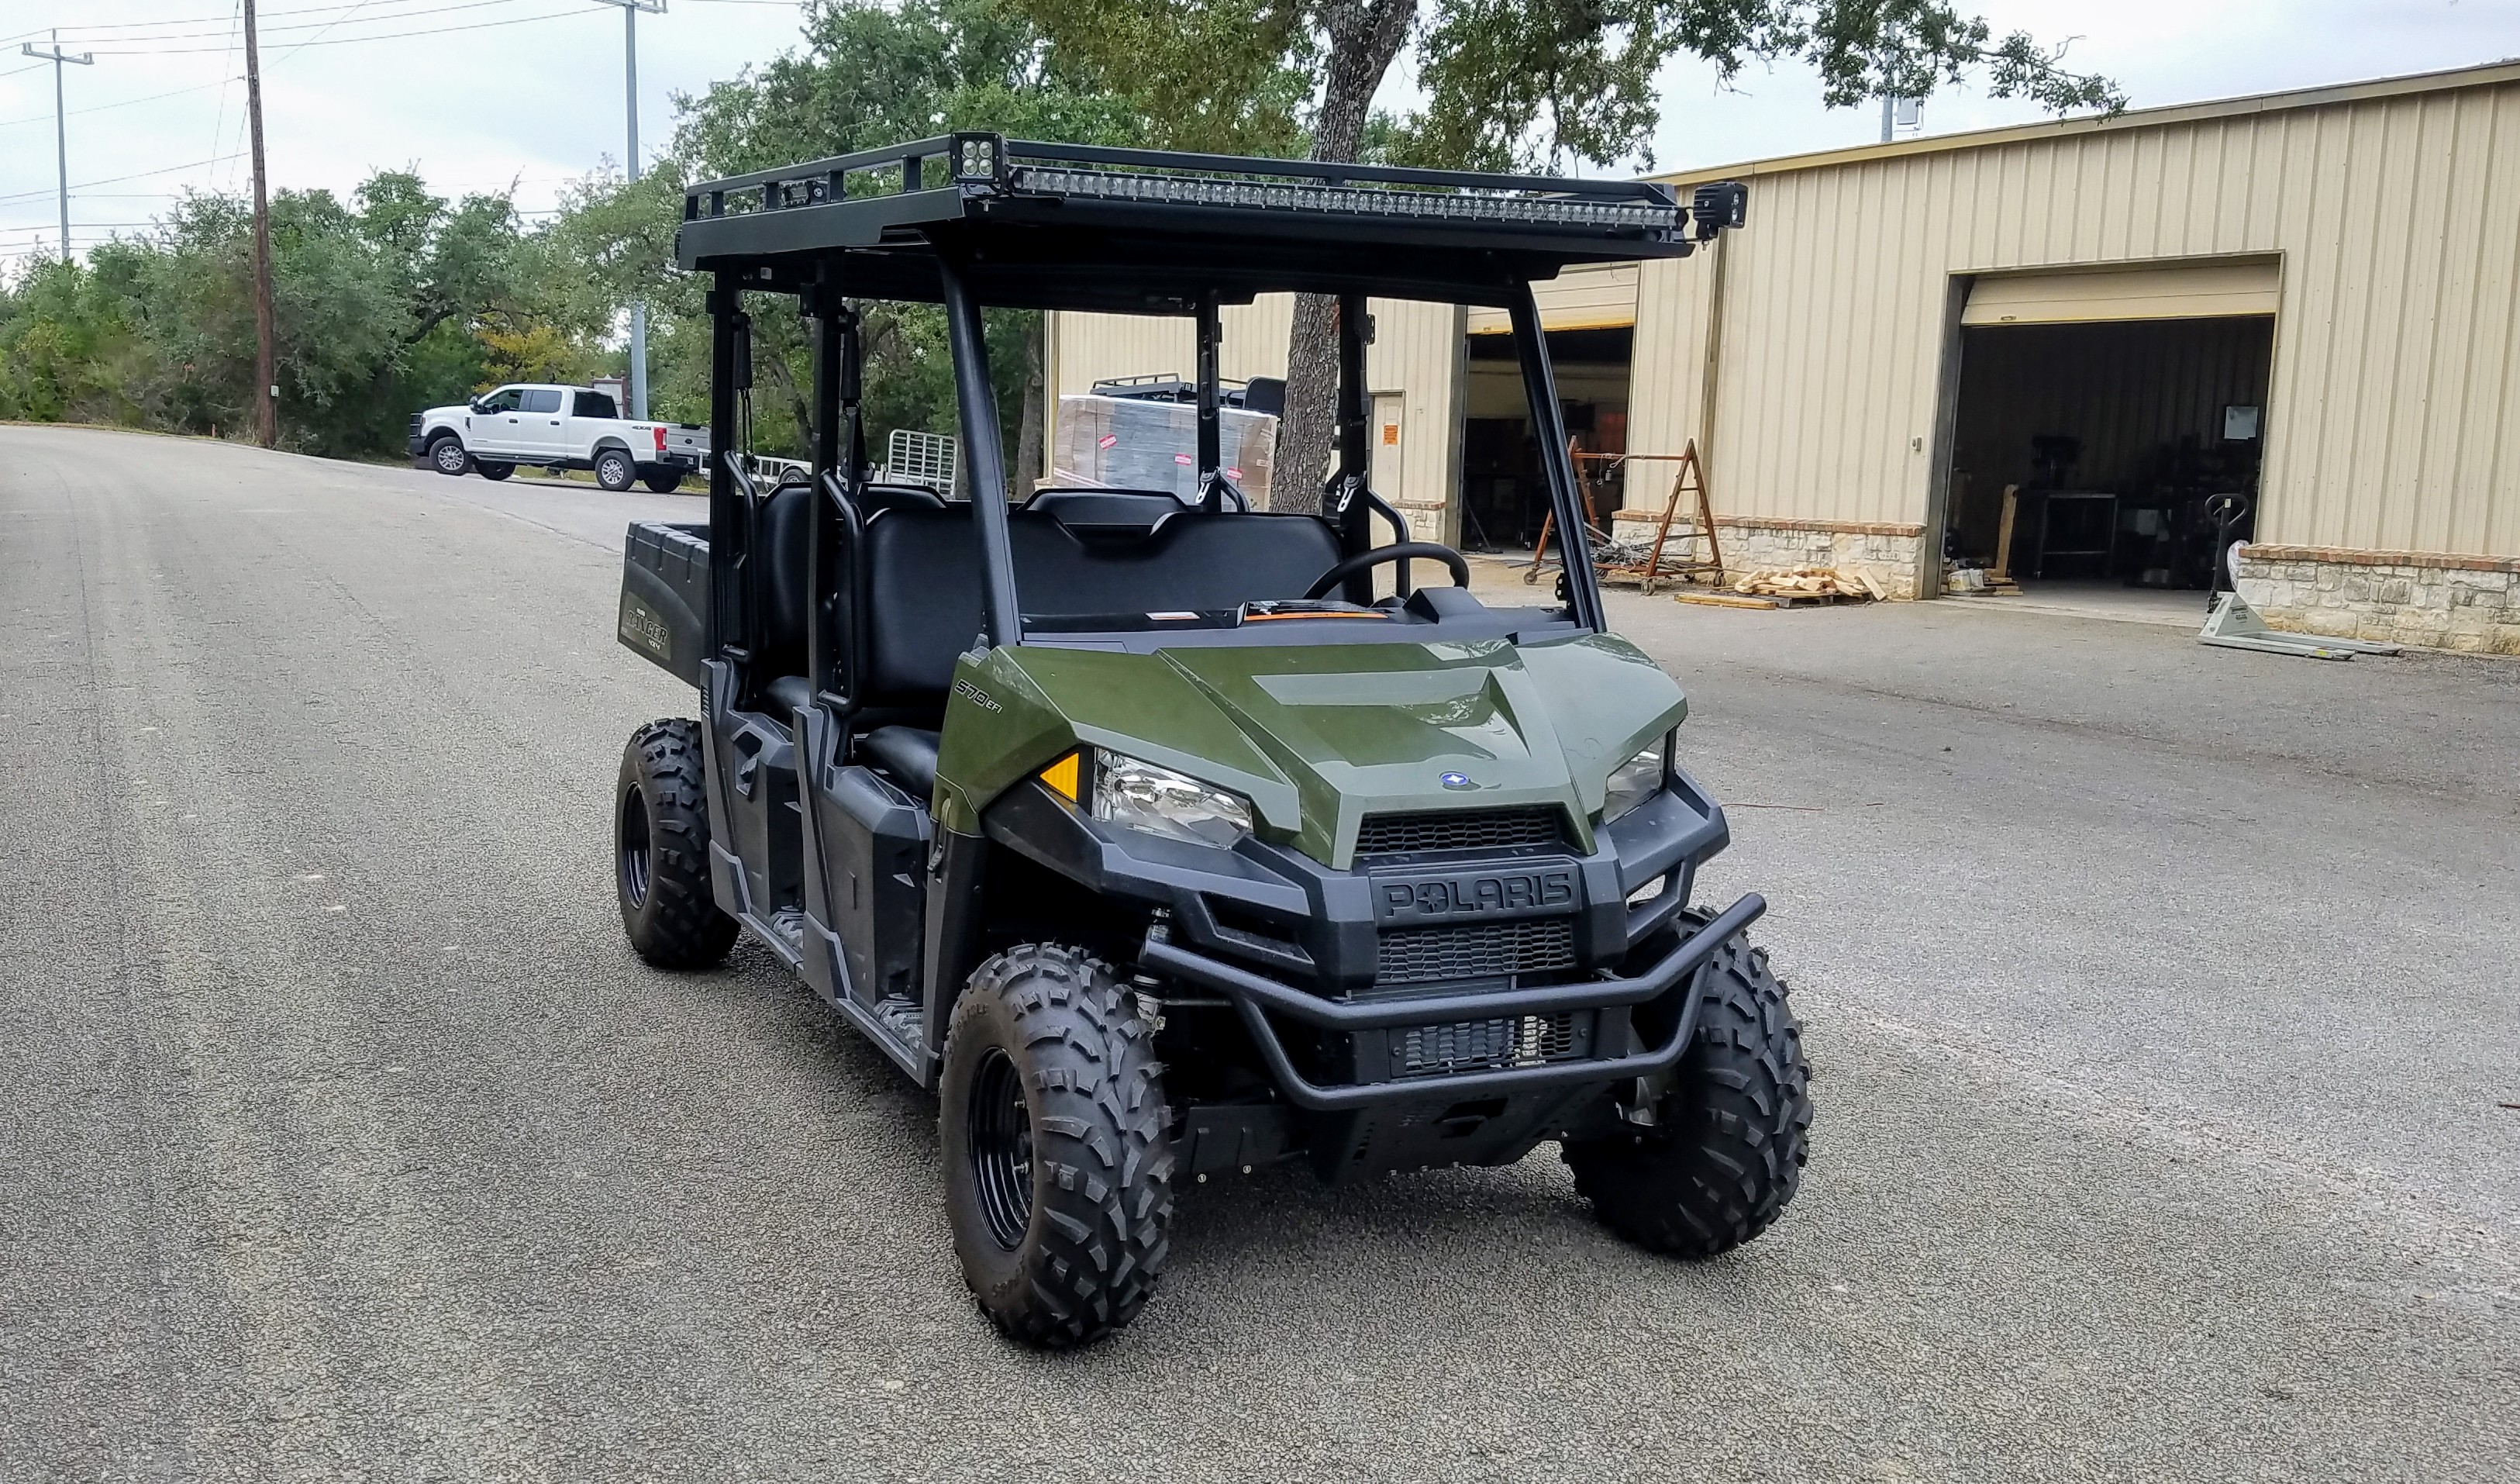 polaris-mid-size-crew-metal-roof-with-led-light-bars-and-utility-rack-570.jpg